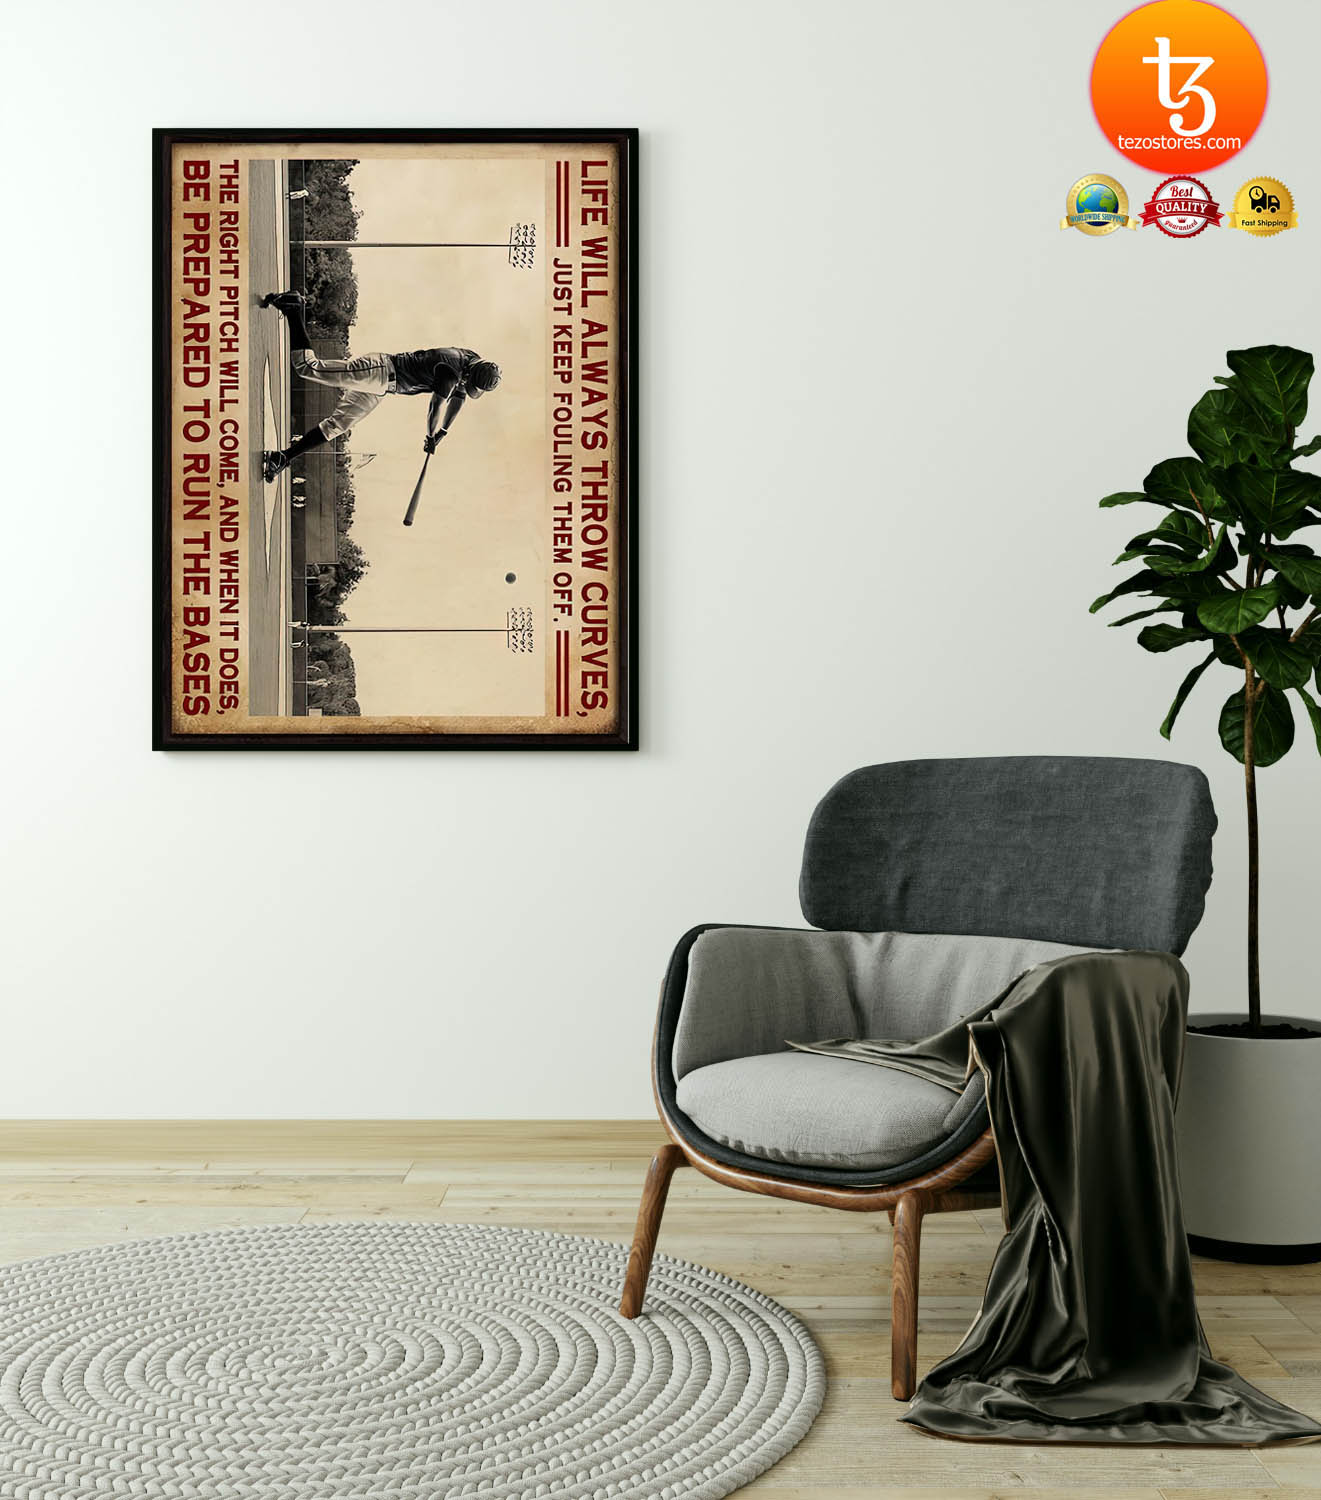 Baseball life will always throw curves just keep fouling them off poster 23